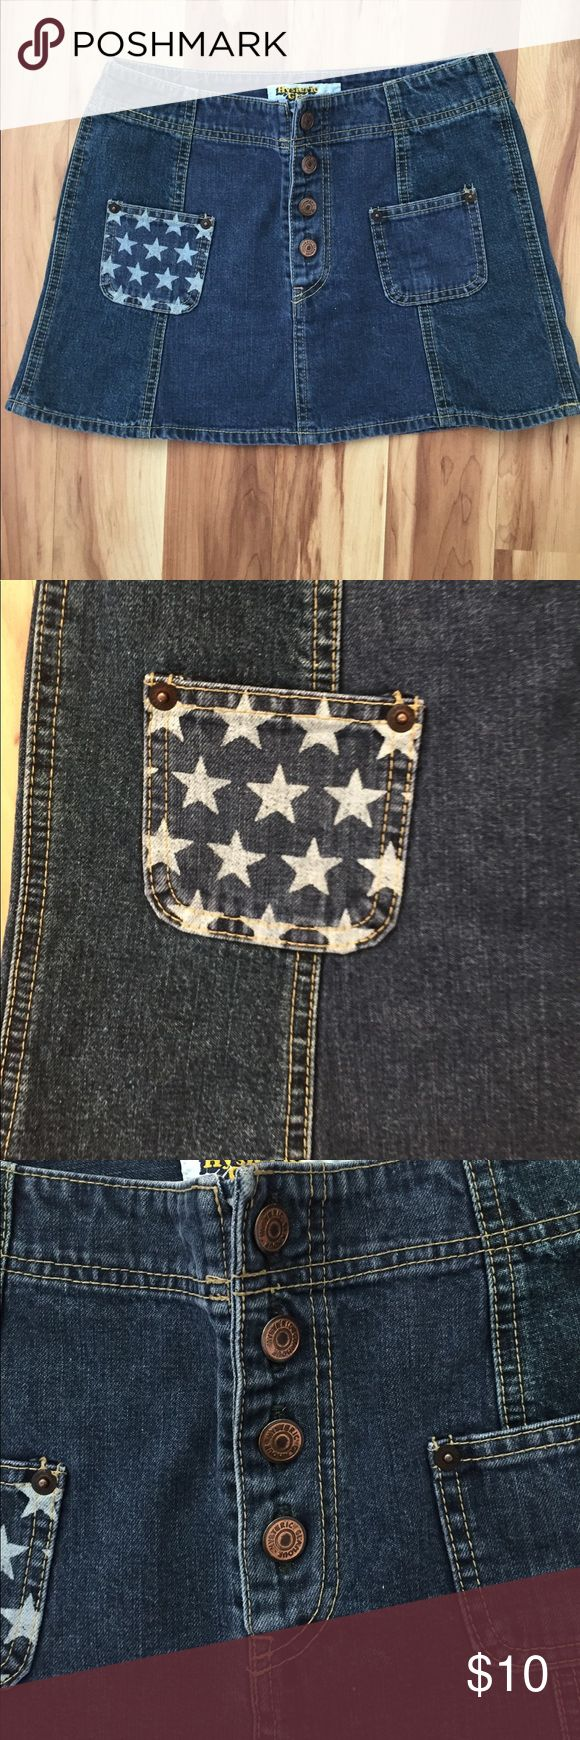 """Blue Jean Mini Skirt Stars 4th of July Very cute Skirt with stars on the pockets Perfect for 4th of July BBQ no Size looks like a small.Length 12 1/4"""" waist 14 Hysteric Glamour Skirts Mini"""